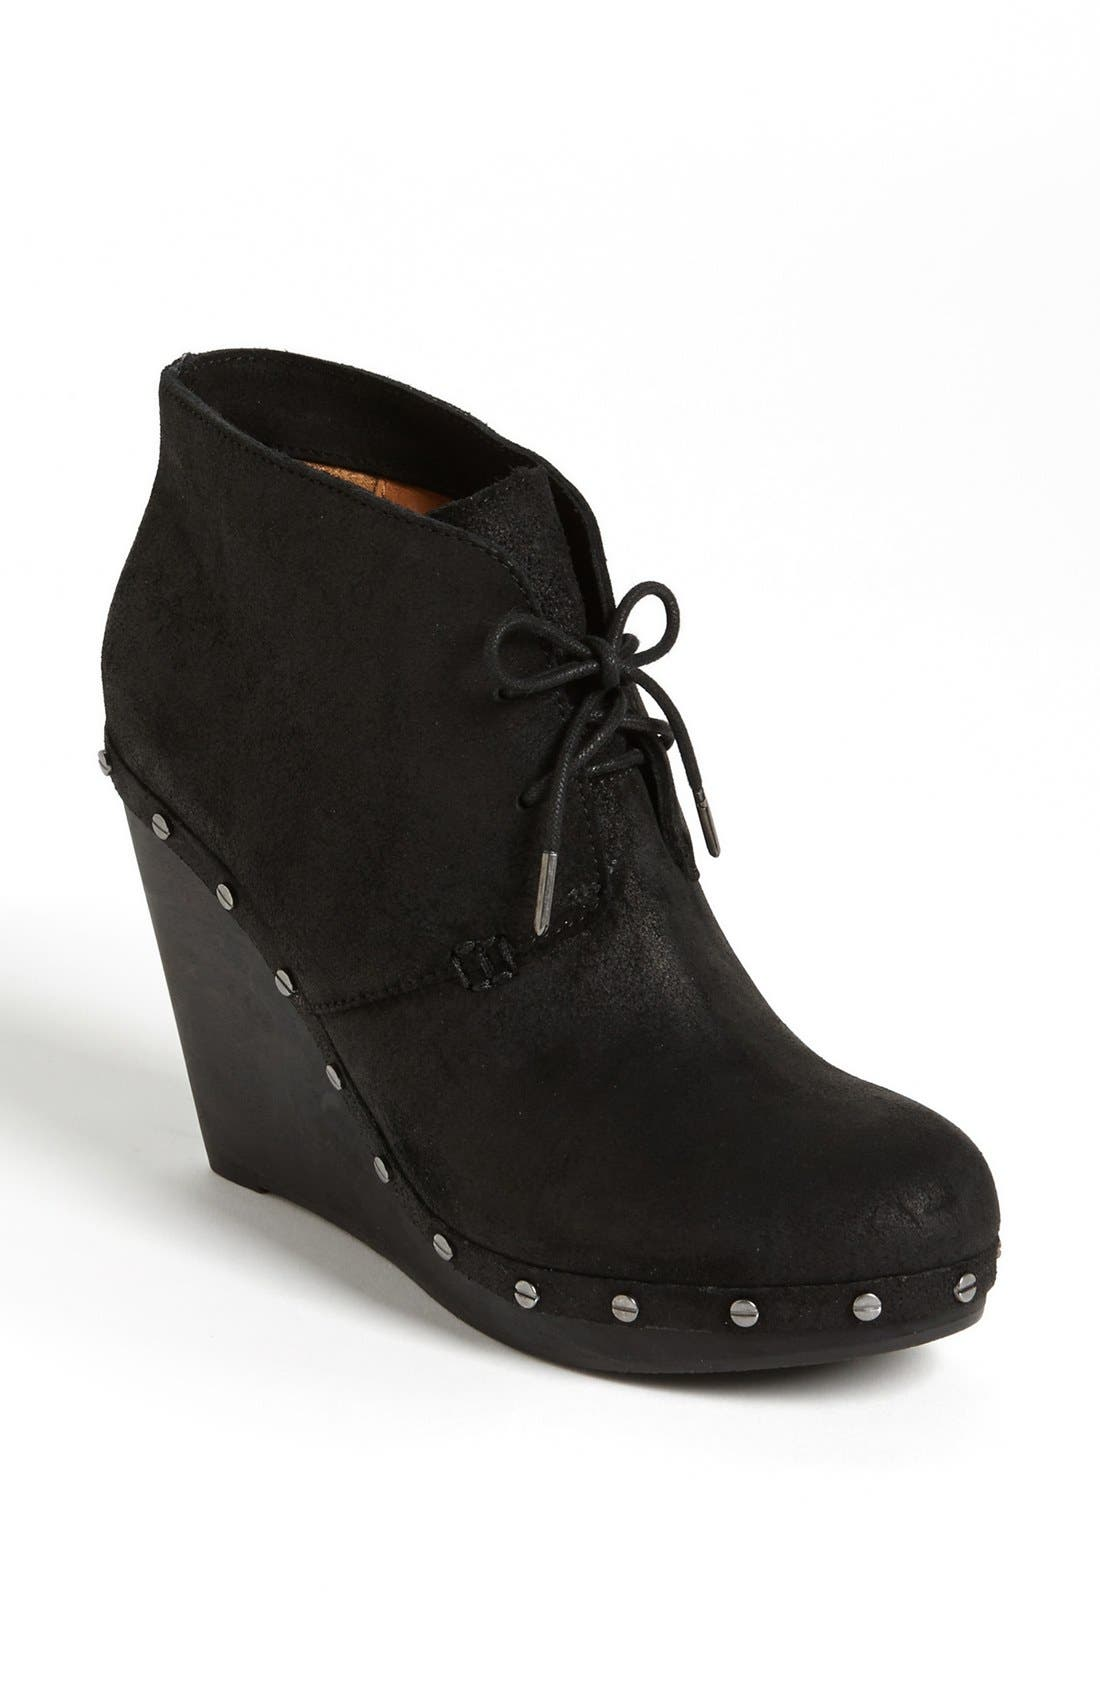 Main Image - Dr. Scholl's Original Collection 'Aviator' Wedge Boot